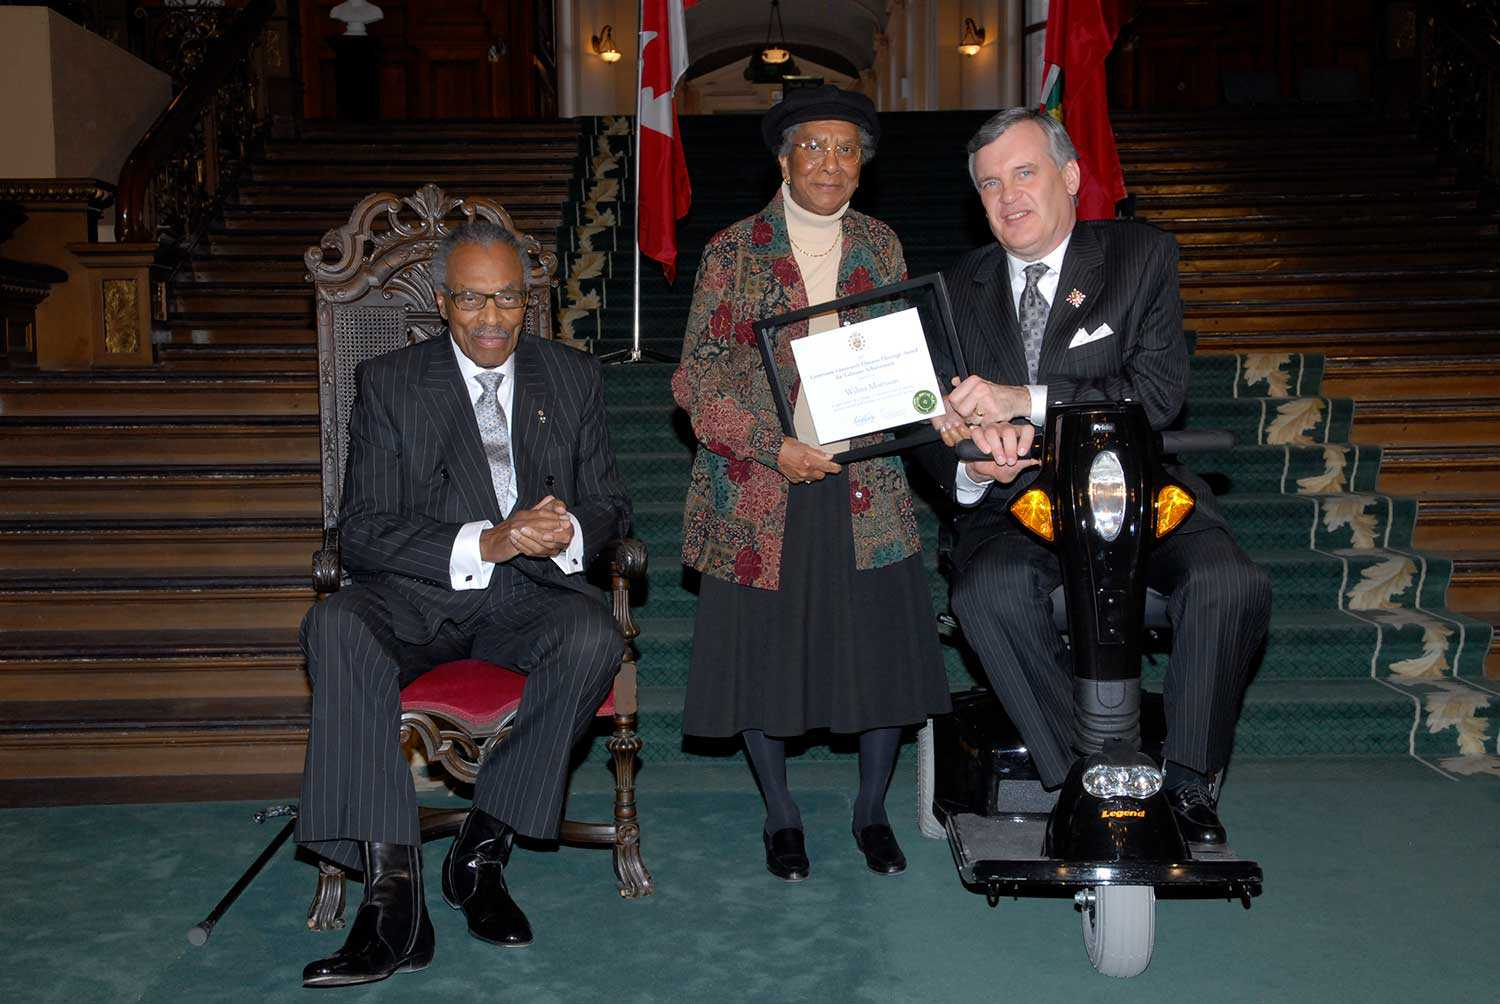 Wilma Morrison received a Lieutenant Governor's Ontario Heritage Award for Lifetime Achievement in 2007 from the Ontario Heritage Trust, presented by The Honourable Lincoln M. Alexander (left) and The Honourable David C. Onley, Lieutenant Governor of Ontario.